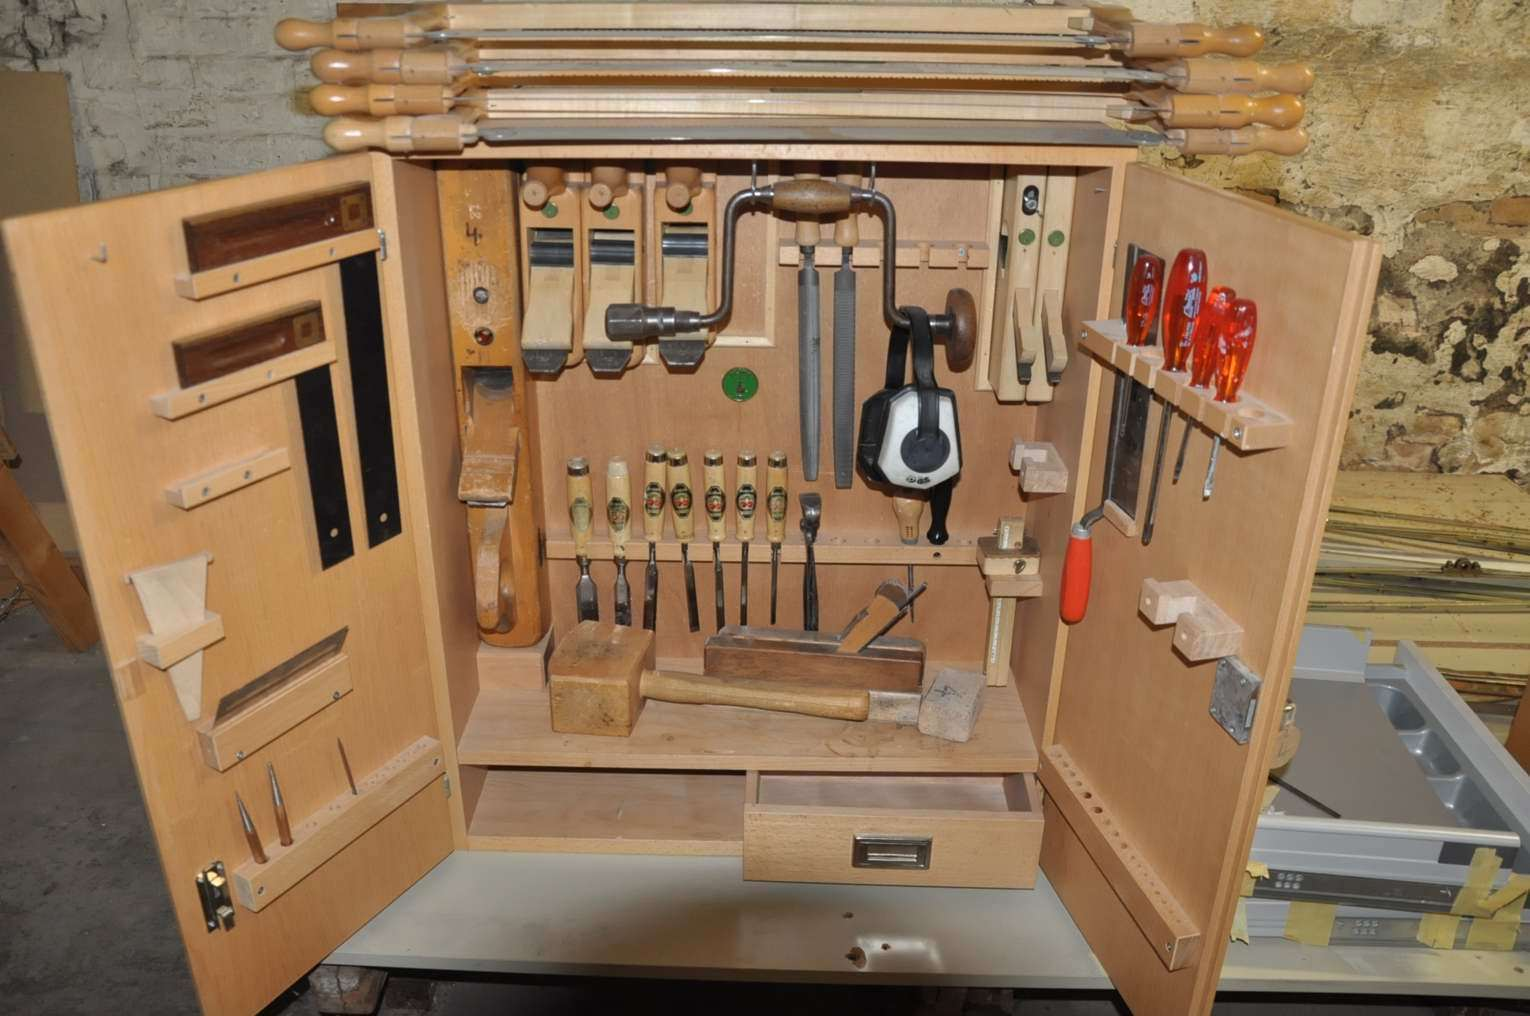 Incroyable ... Tools Cabinet Ulmia Set Carpenter 37 Parts ...